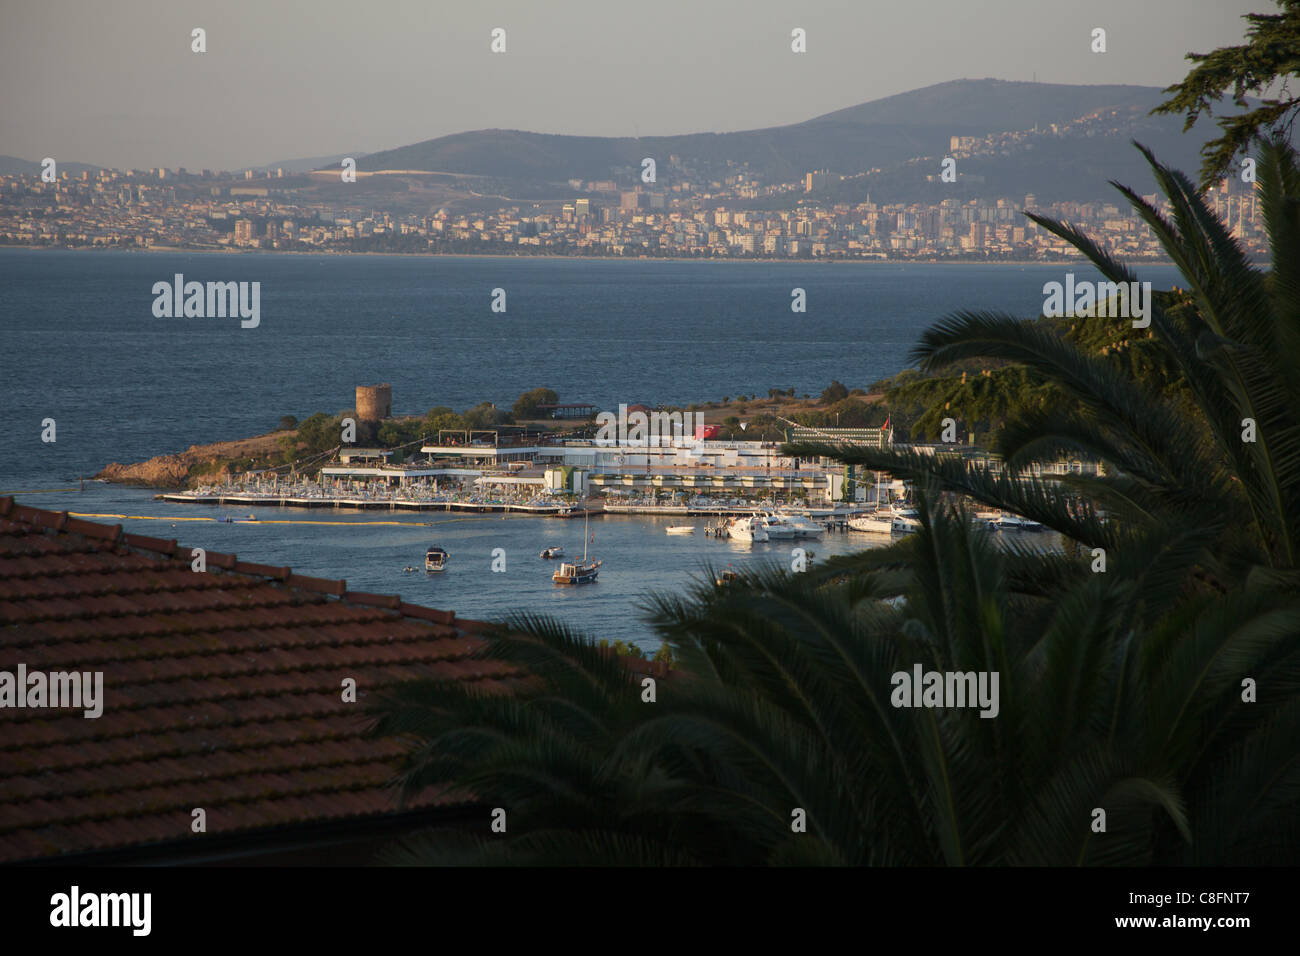 Sports Club on Heybeli Island, Istanbul Turkey, with View over to Asian Side of Istanbul - Stock Image